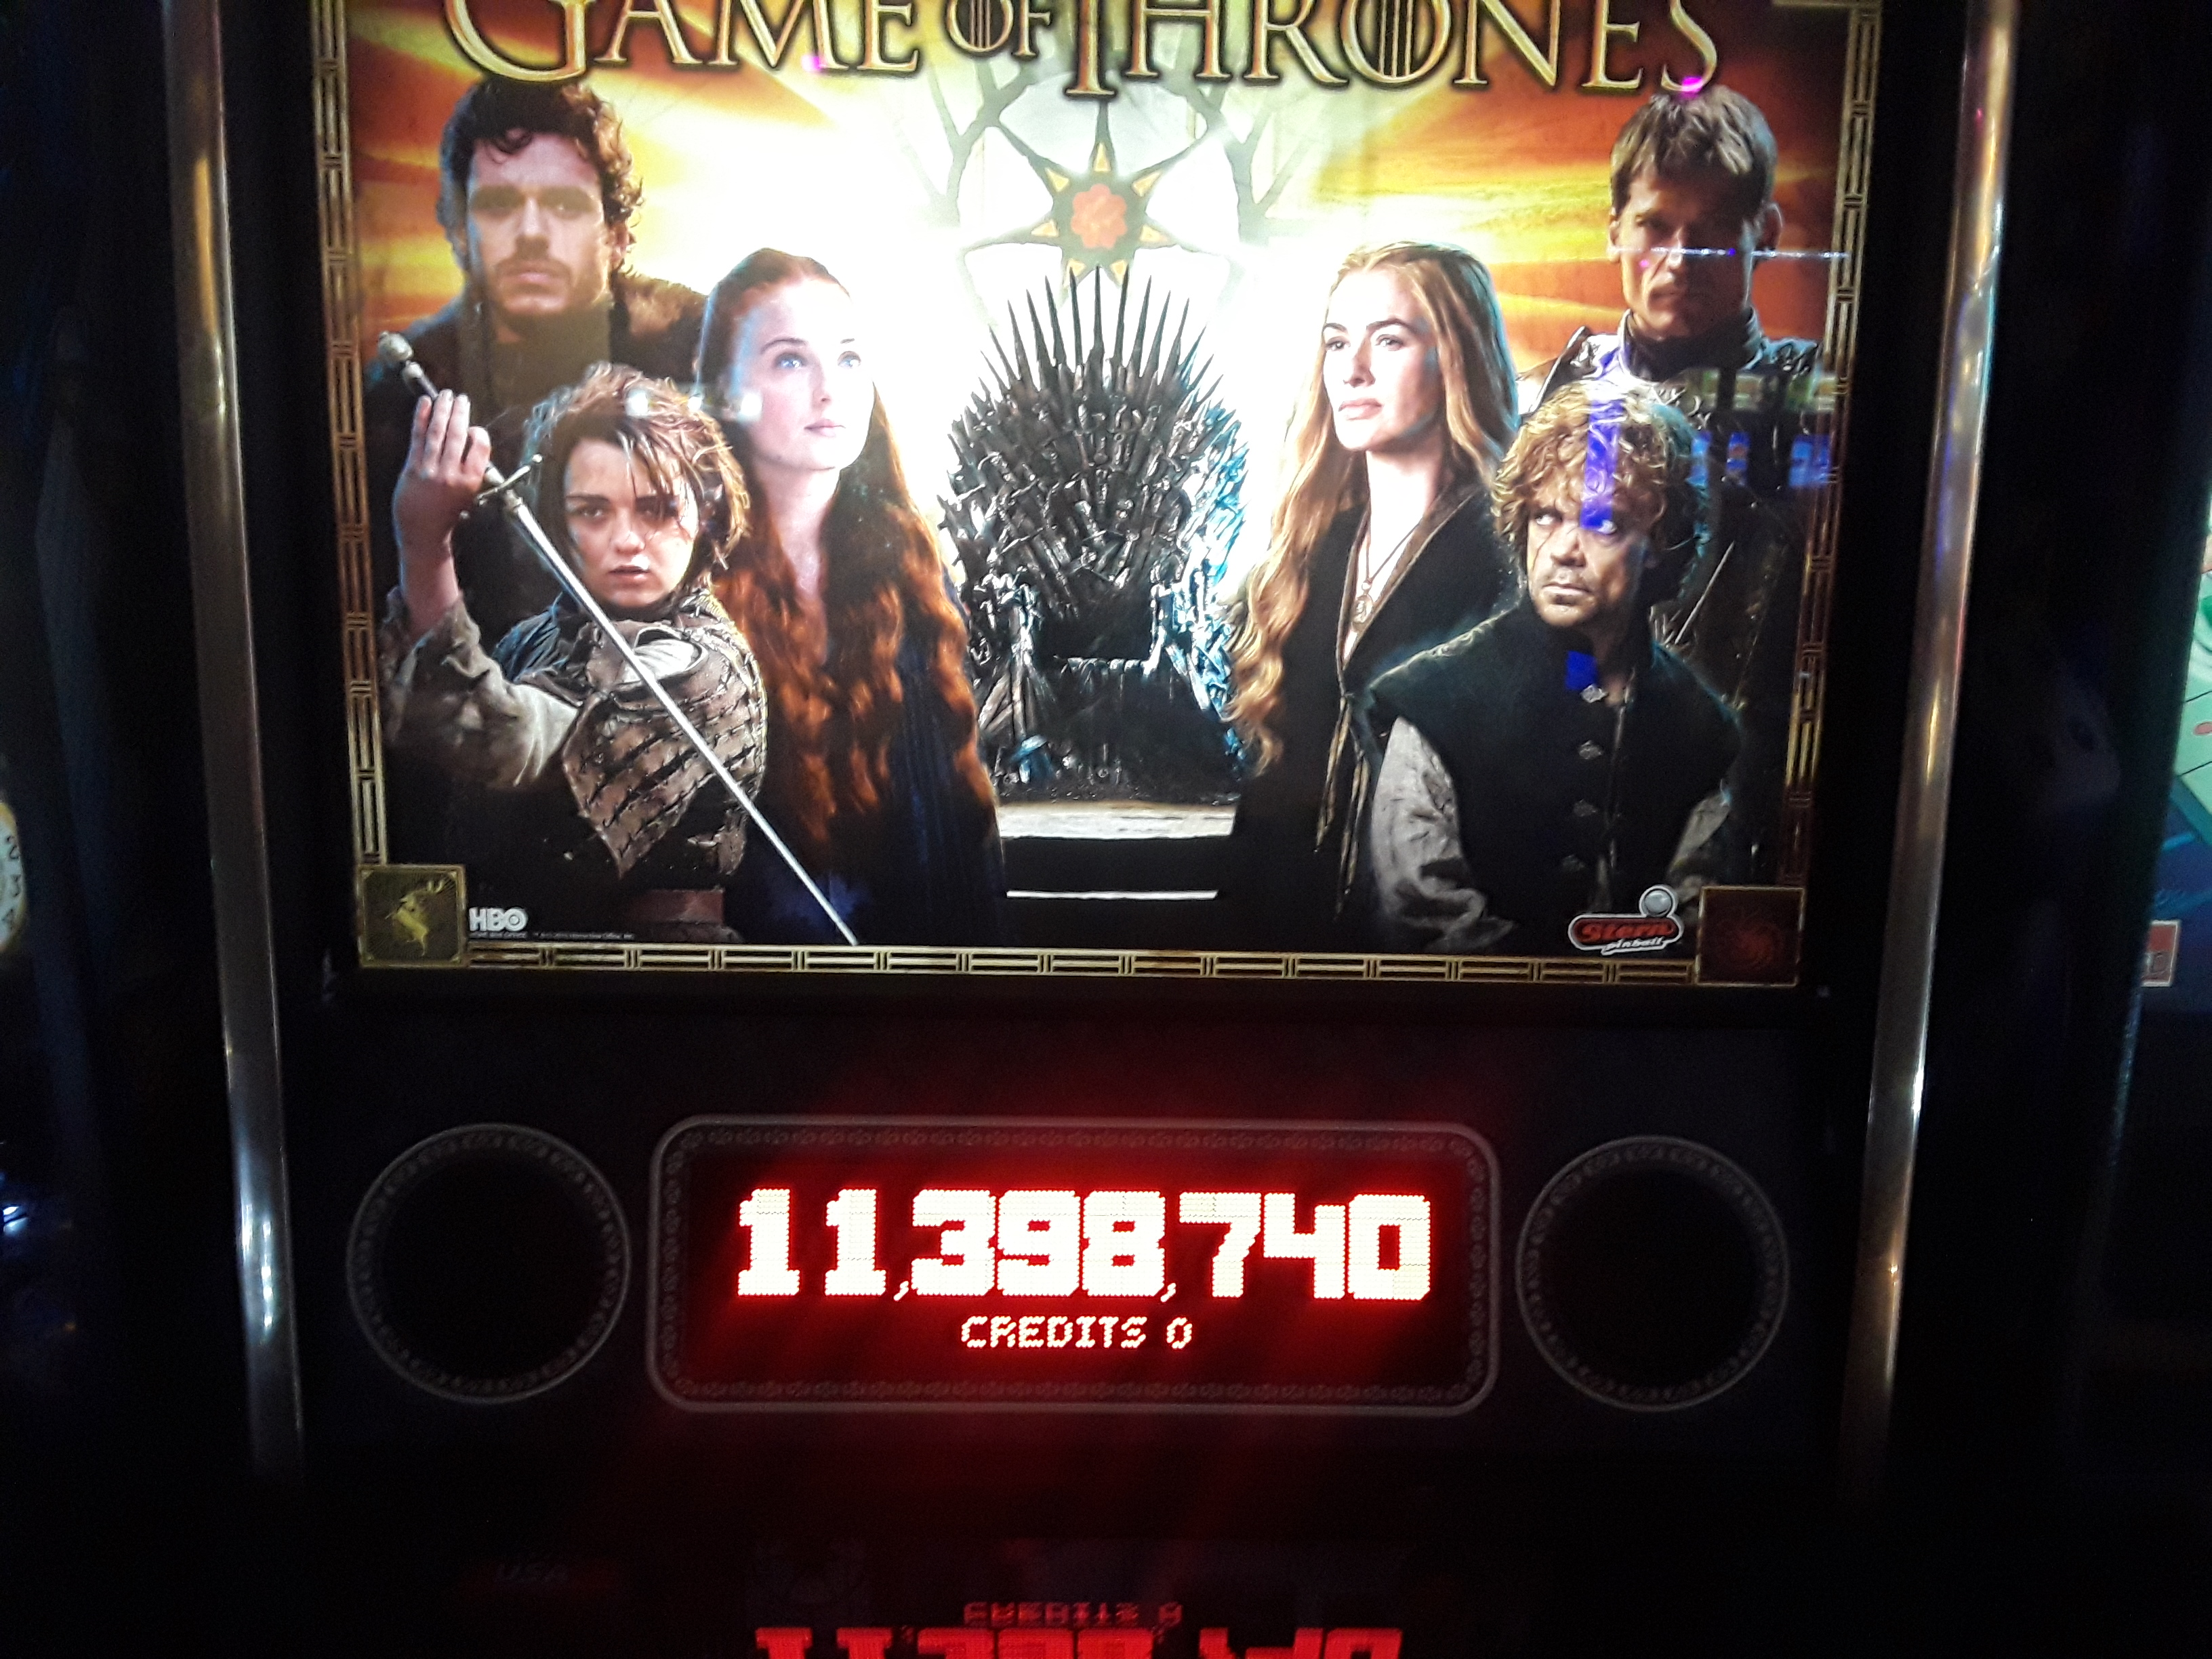 Game Of Thrones 11,398,740 points